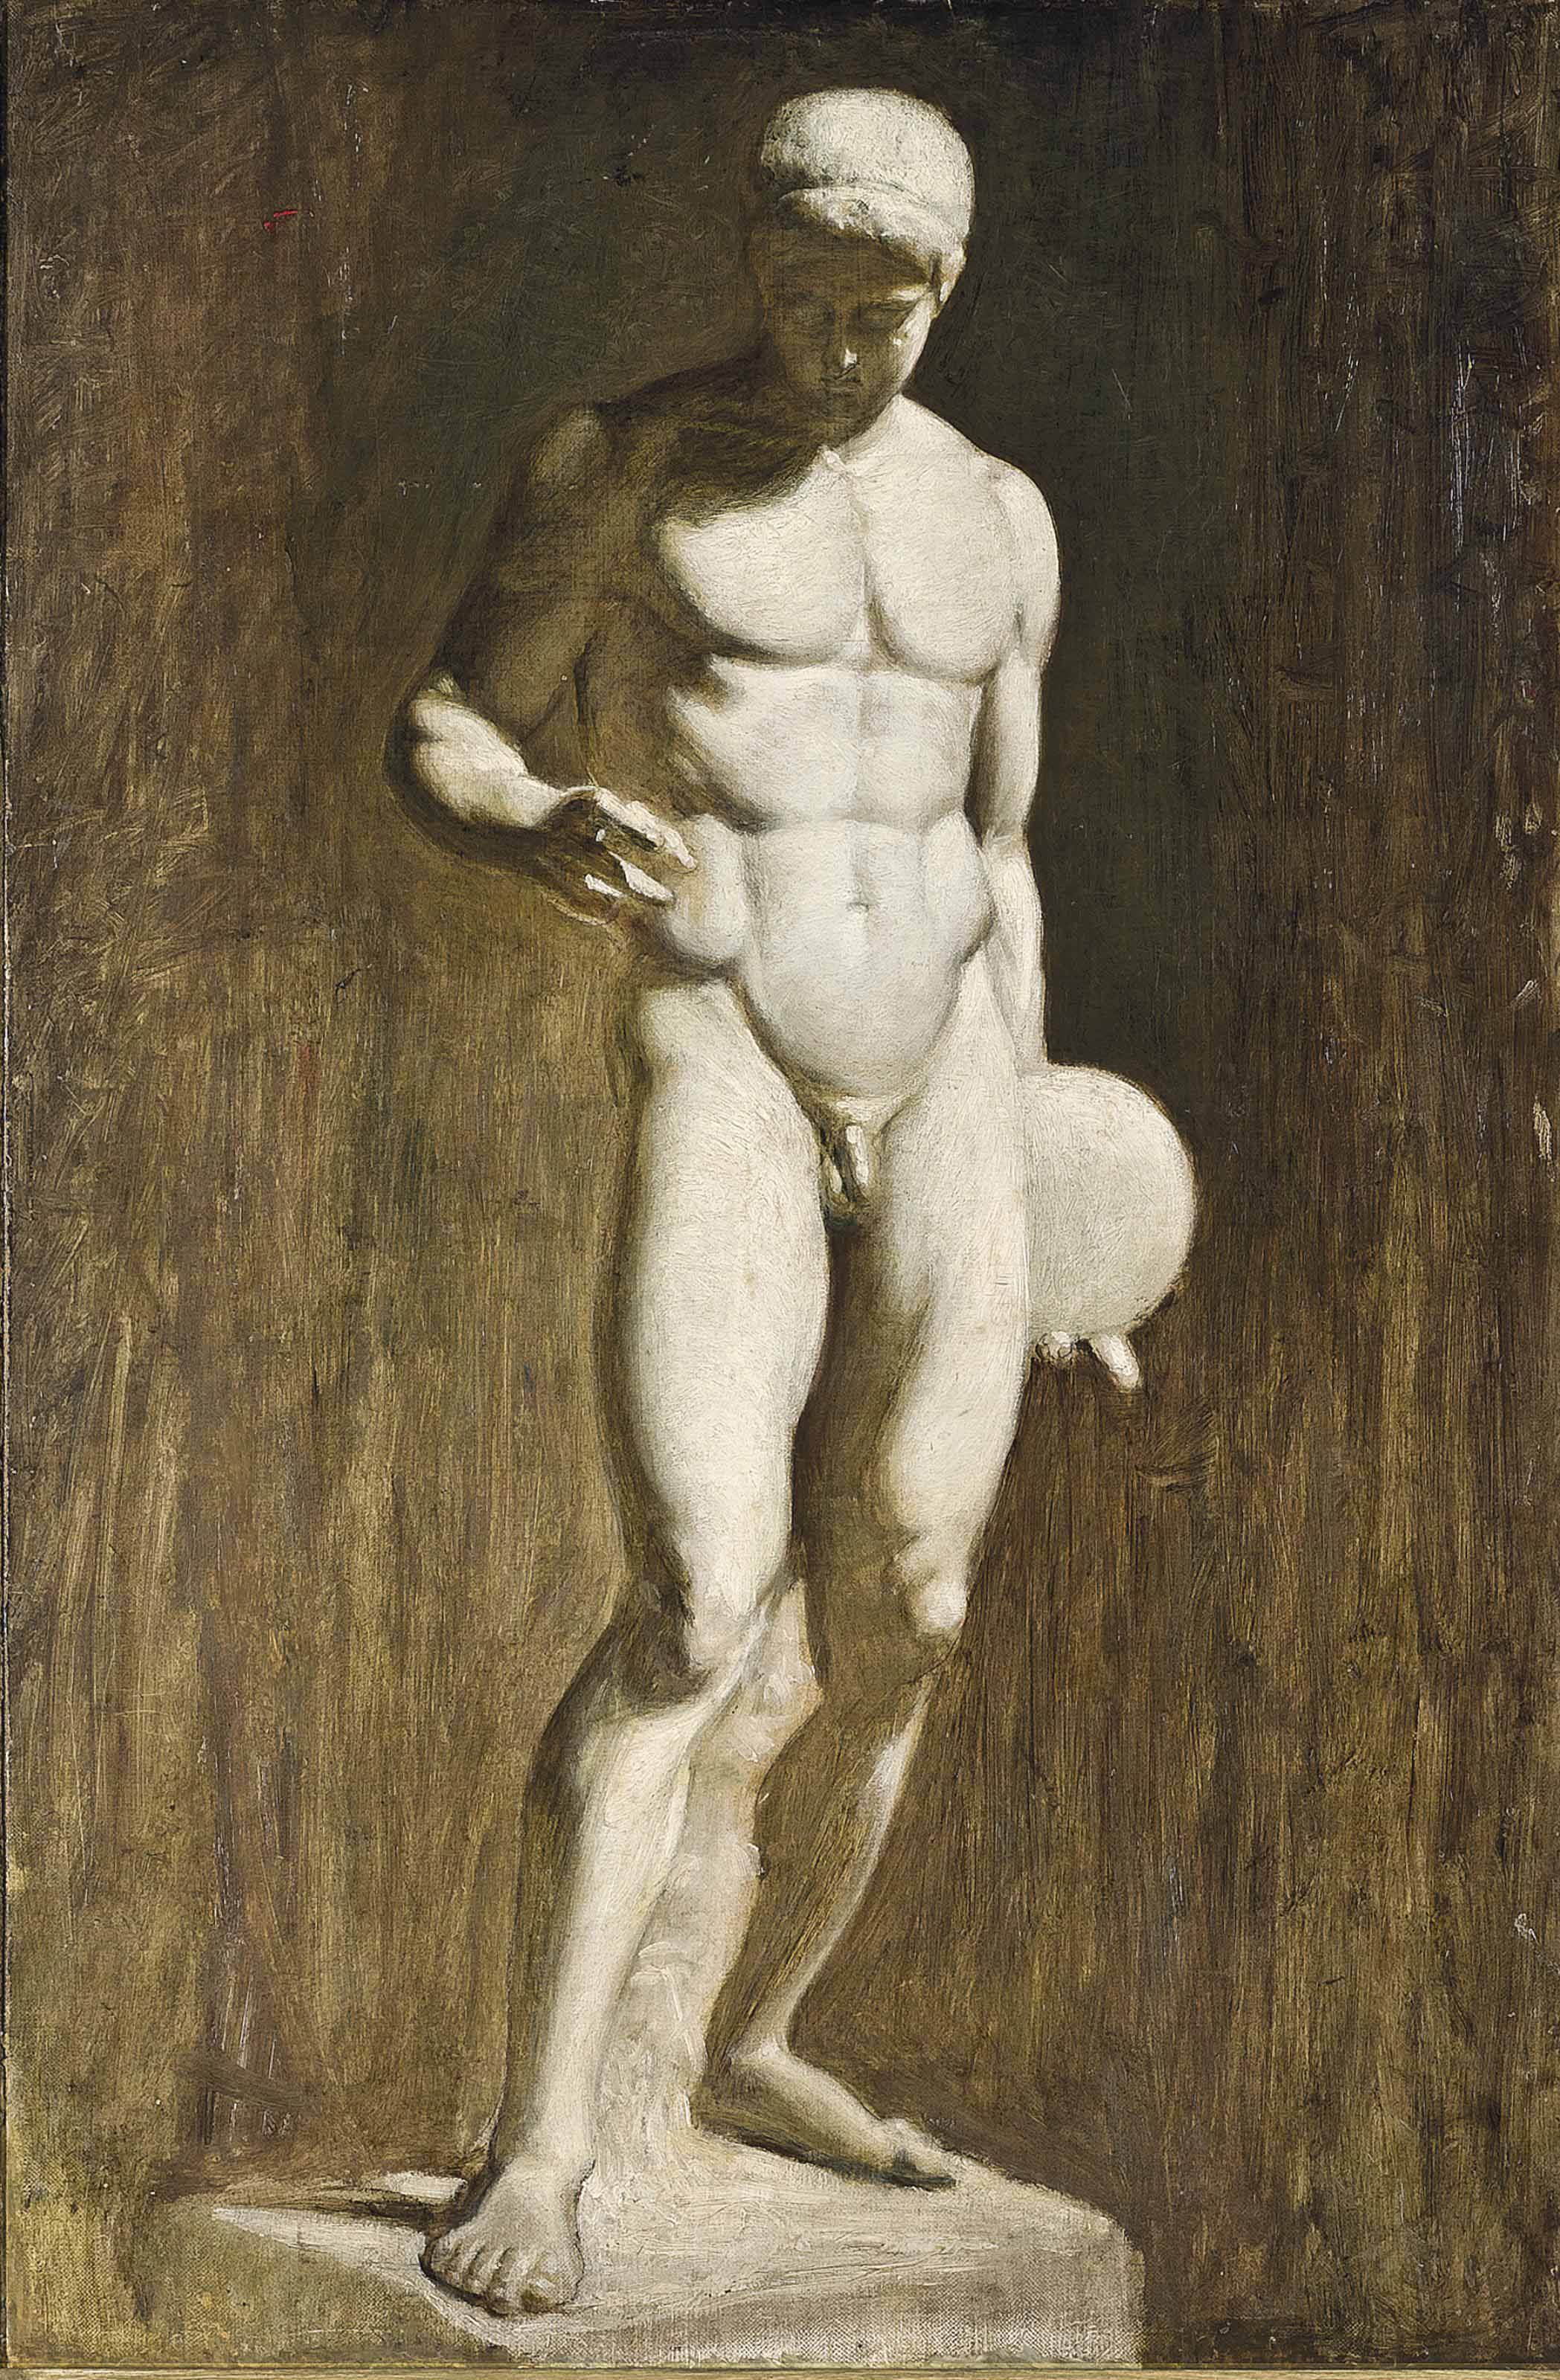 Study from the antique